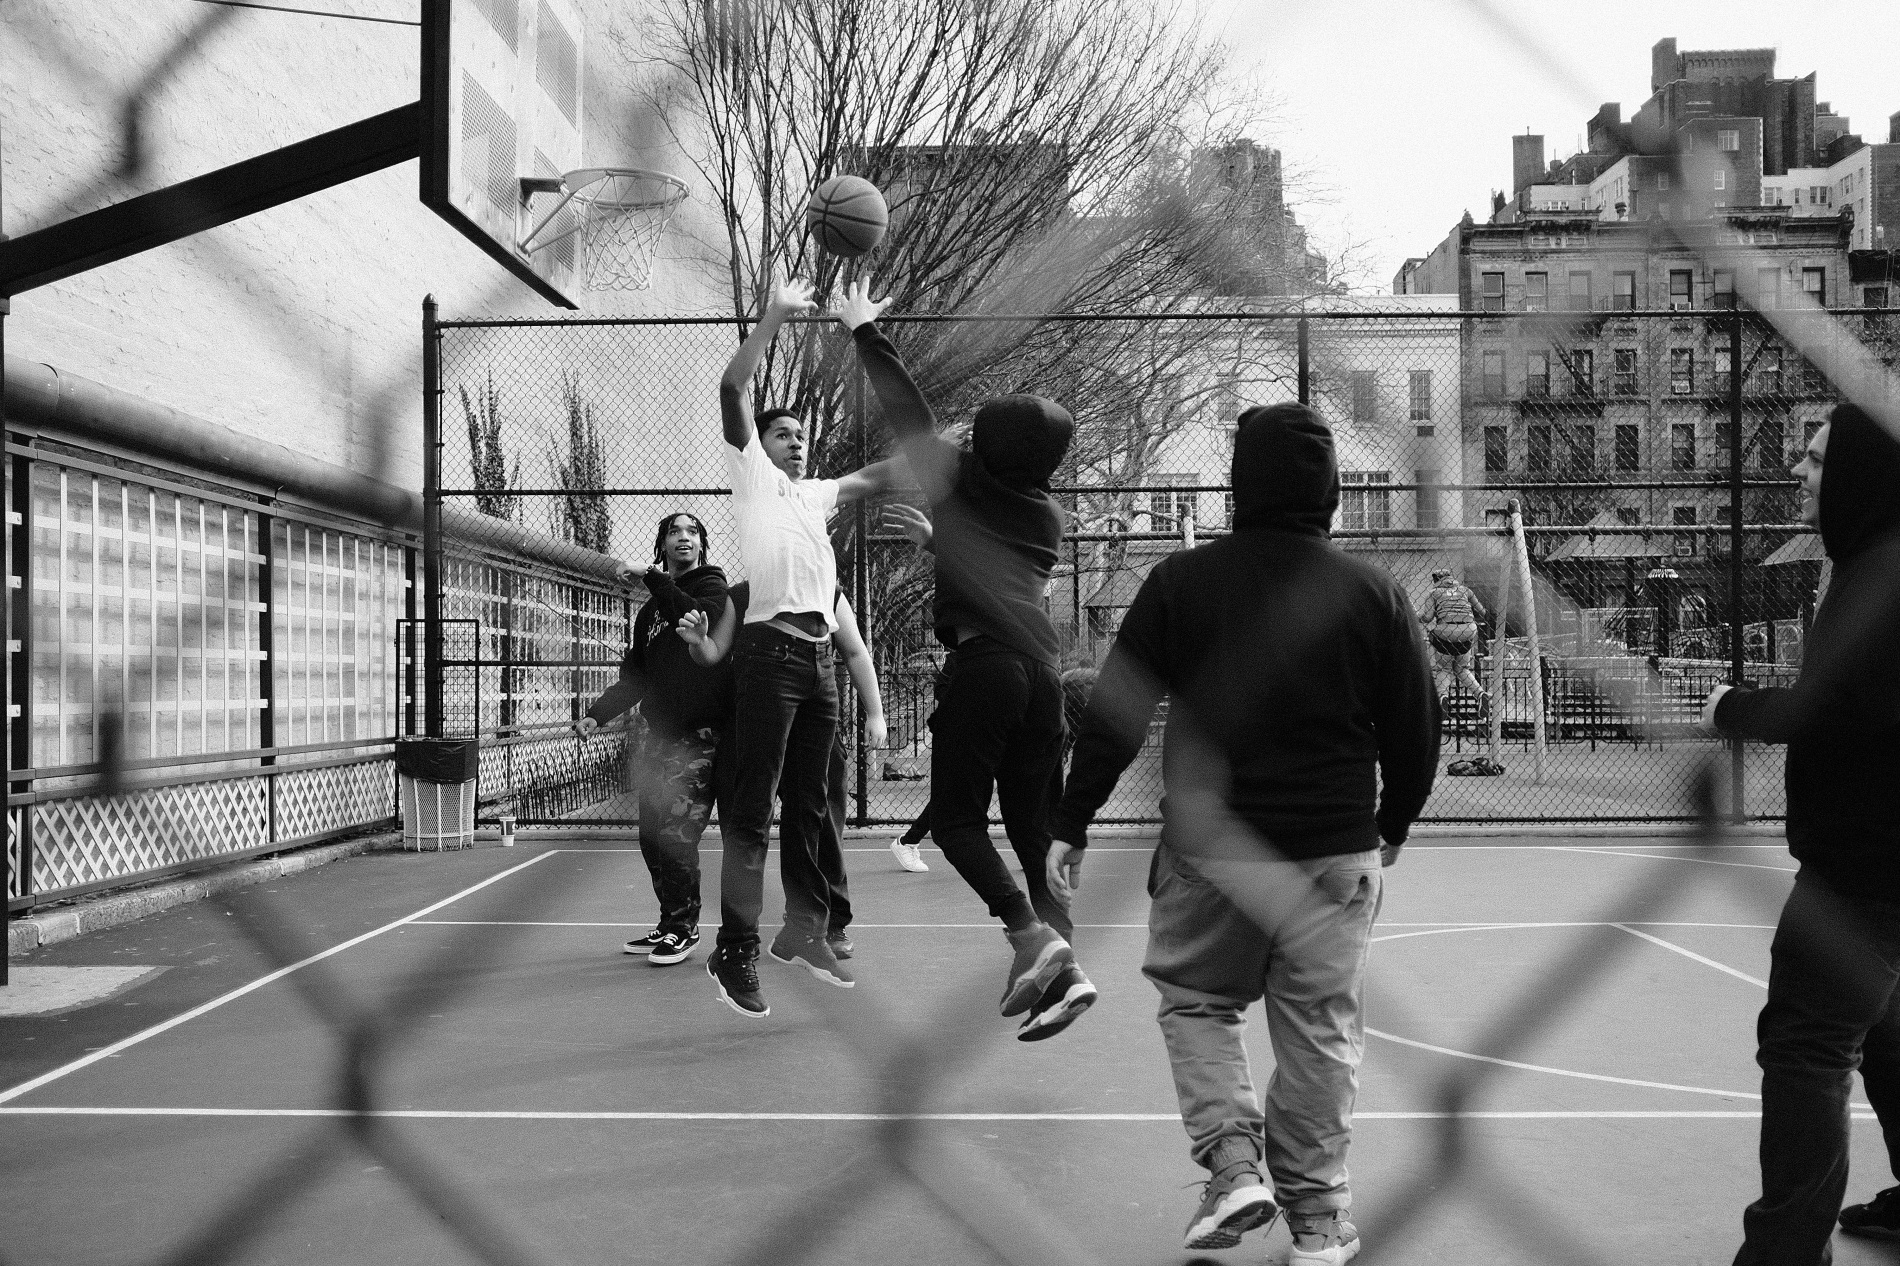 Playing basketball in New York